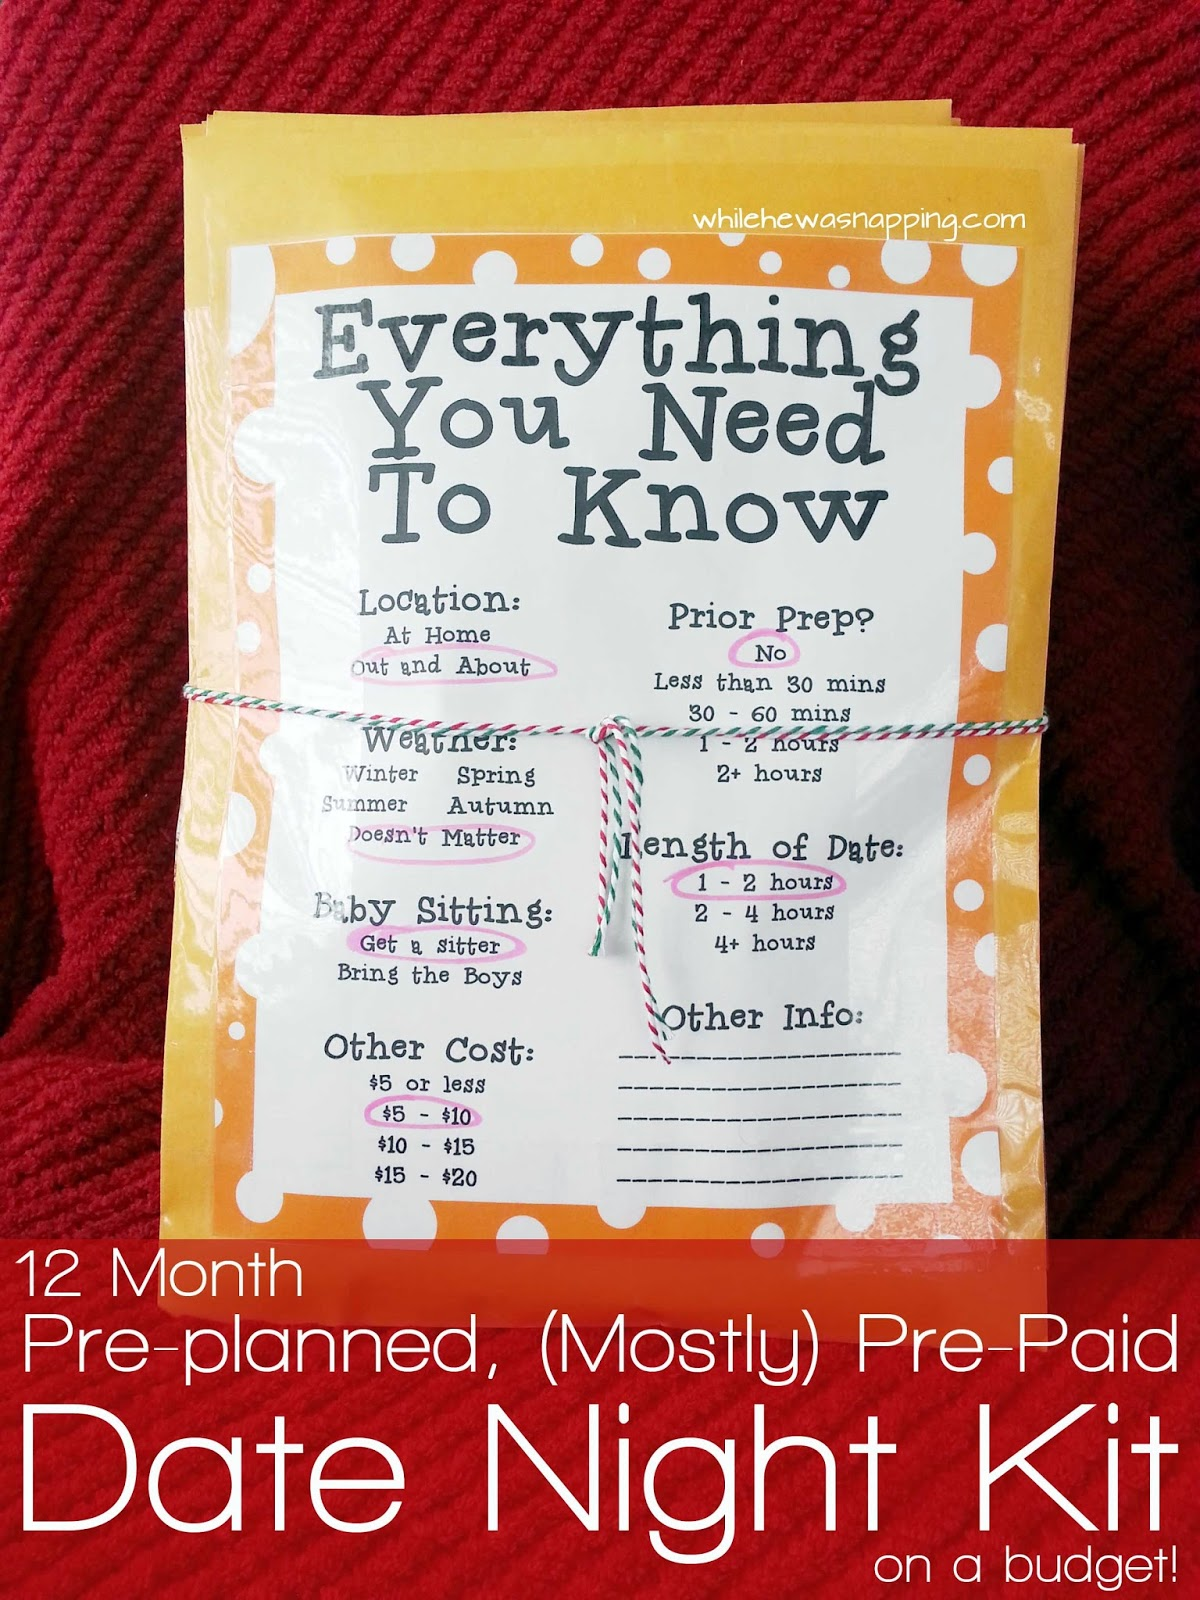 12 Month Pre Planned Mostly Pre Paid Date Night Kit